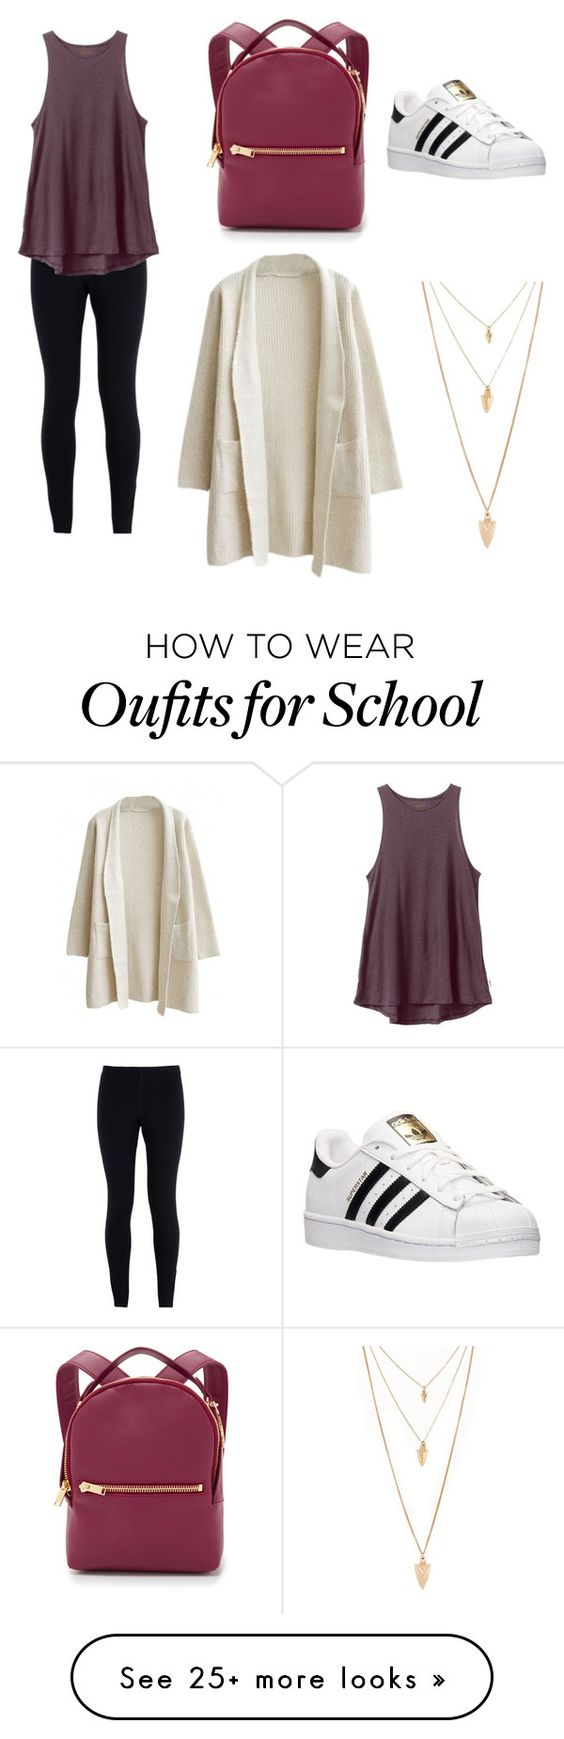 """"""" School Chic """" by hopecatherineharry on Polyvore featuring NIKE, RVCA, adidas, Sophie Hulme and Forever 21"""